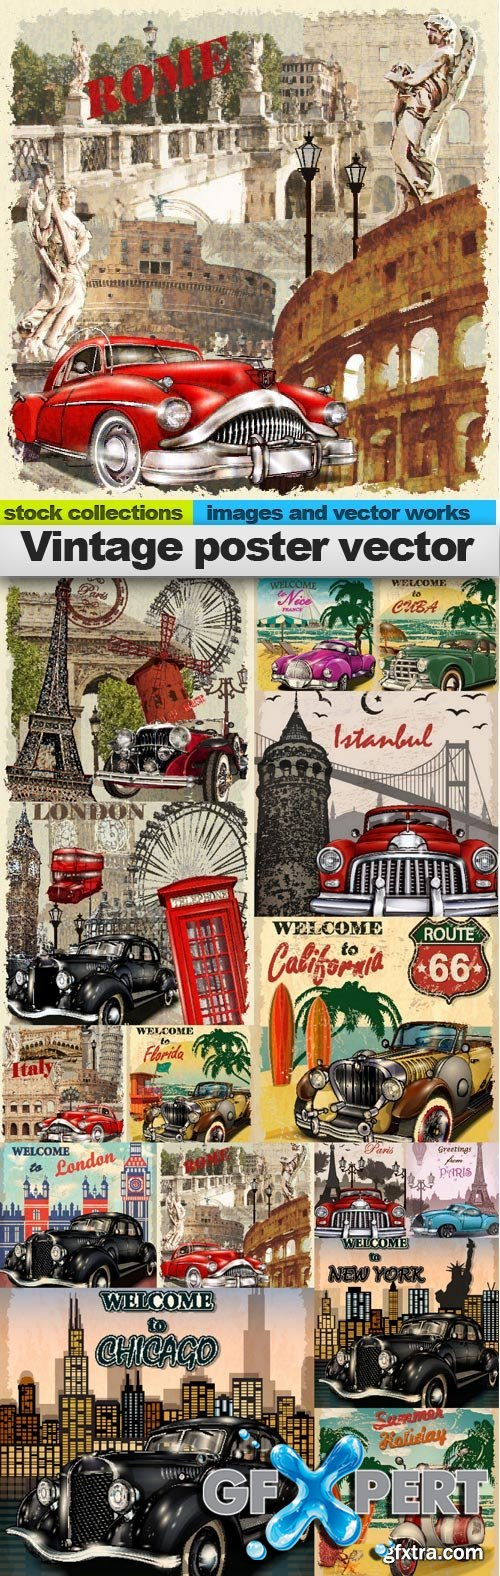 Vintage poster vector 2, 15 x EPS